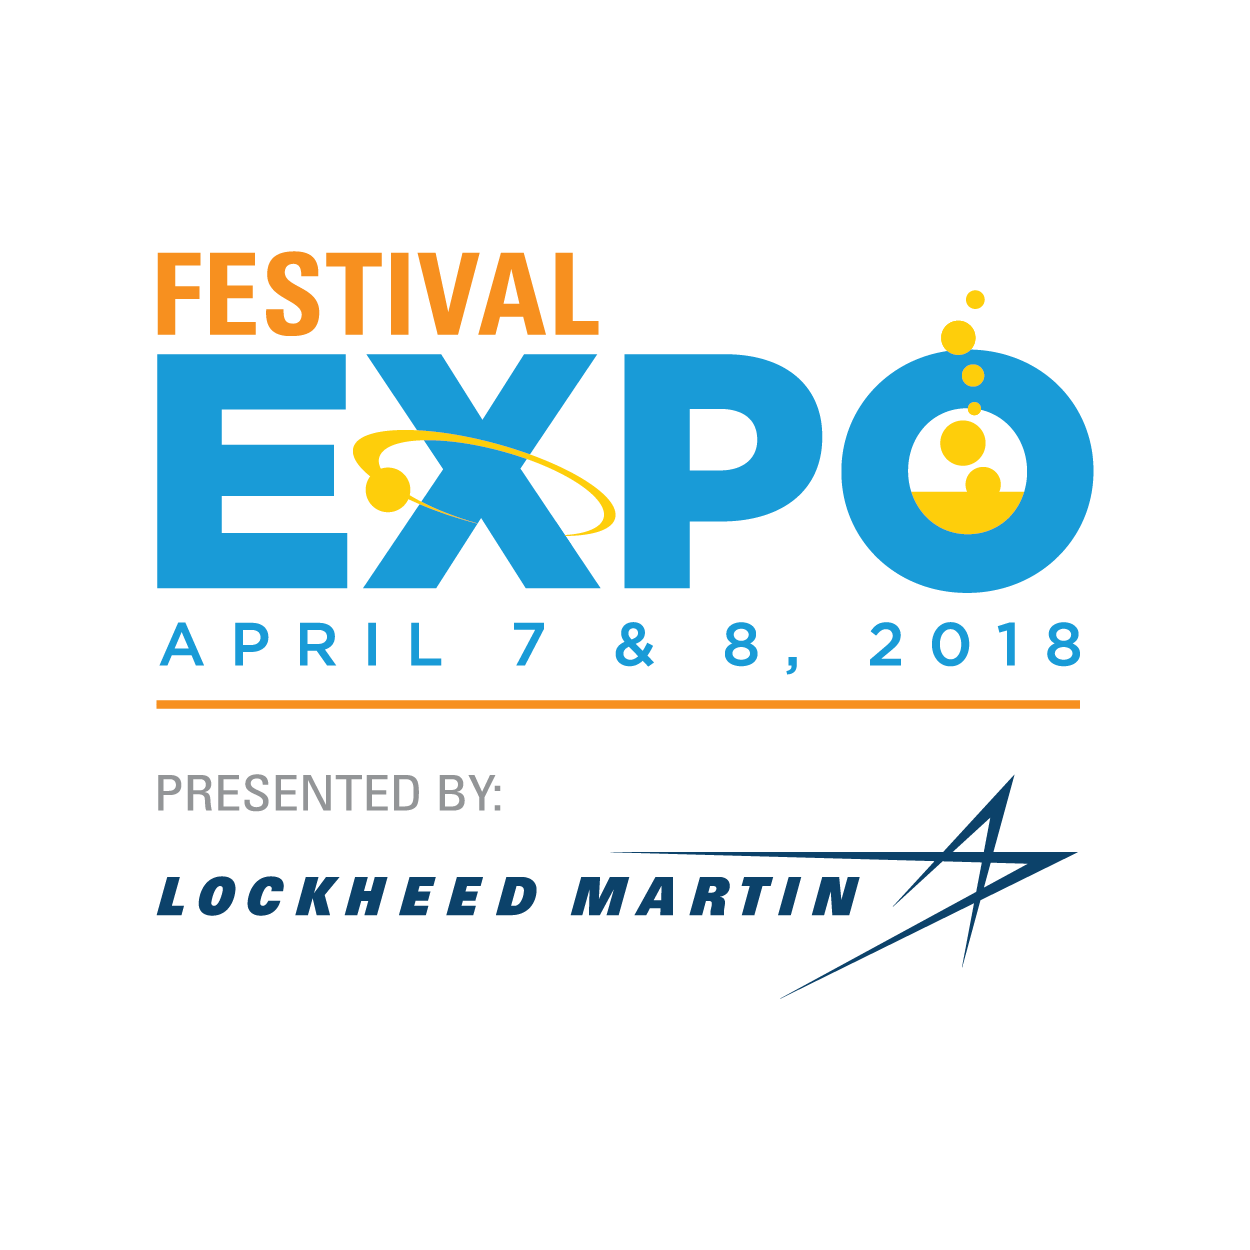 About the 2018 Festival Expo | USA Science & Engineering Festival